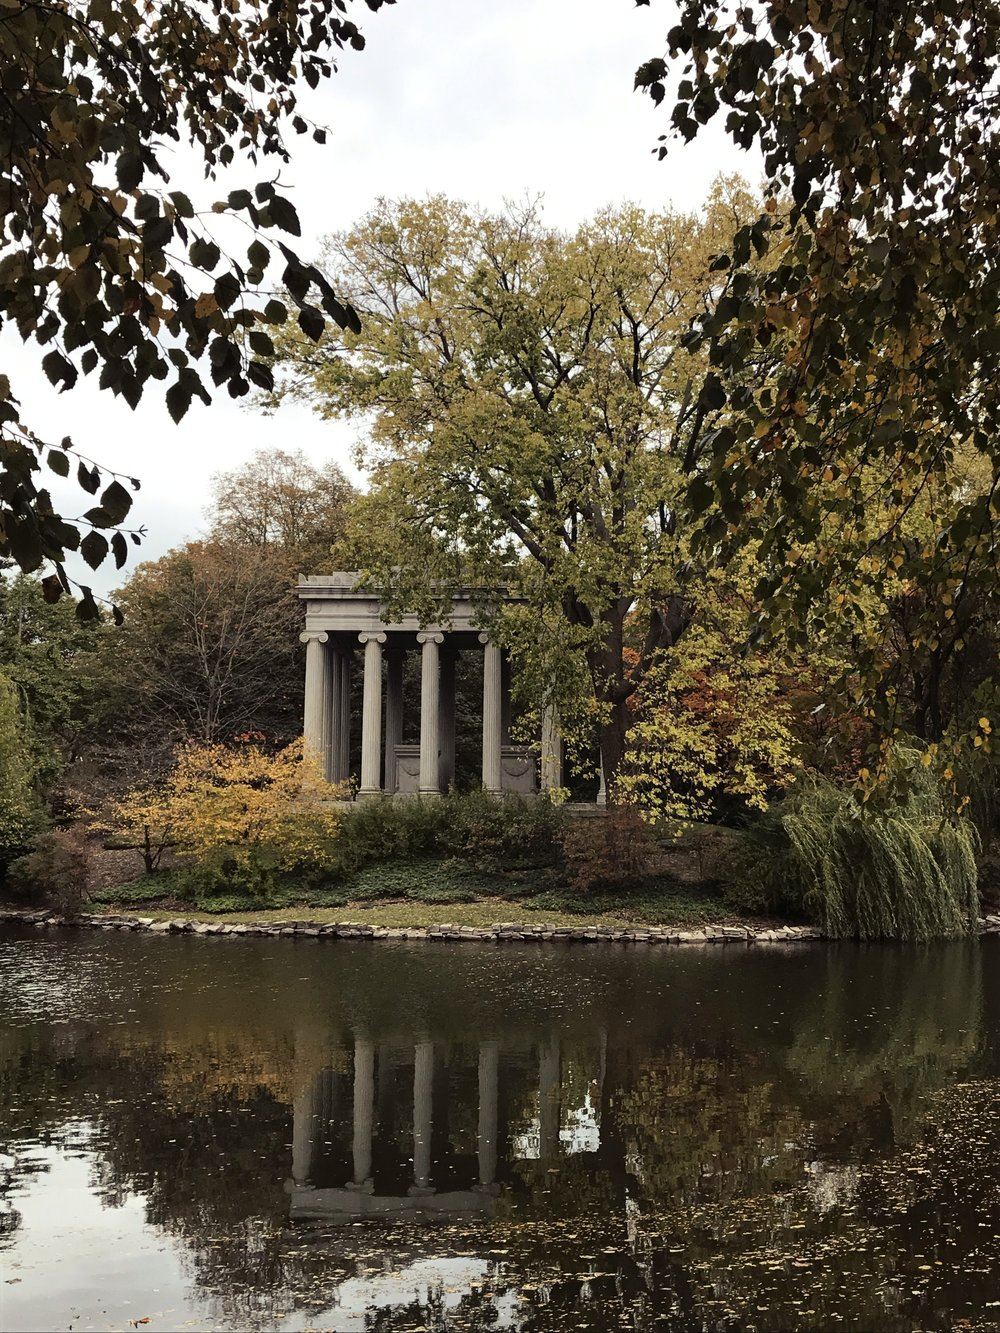 Potter and Bertha Palmer's Greek Temple designed by McKim, Mead & White